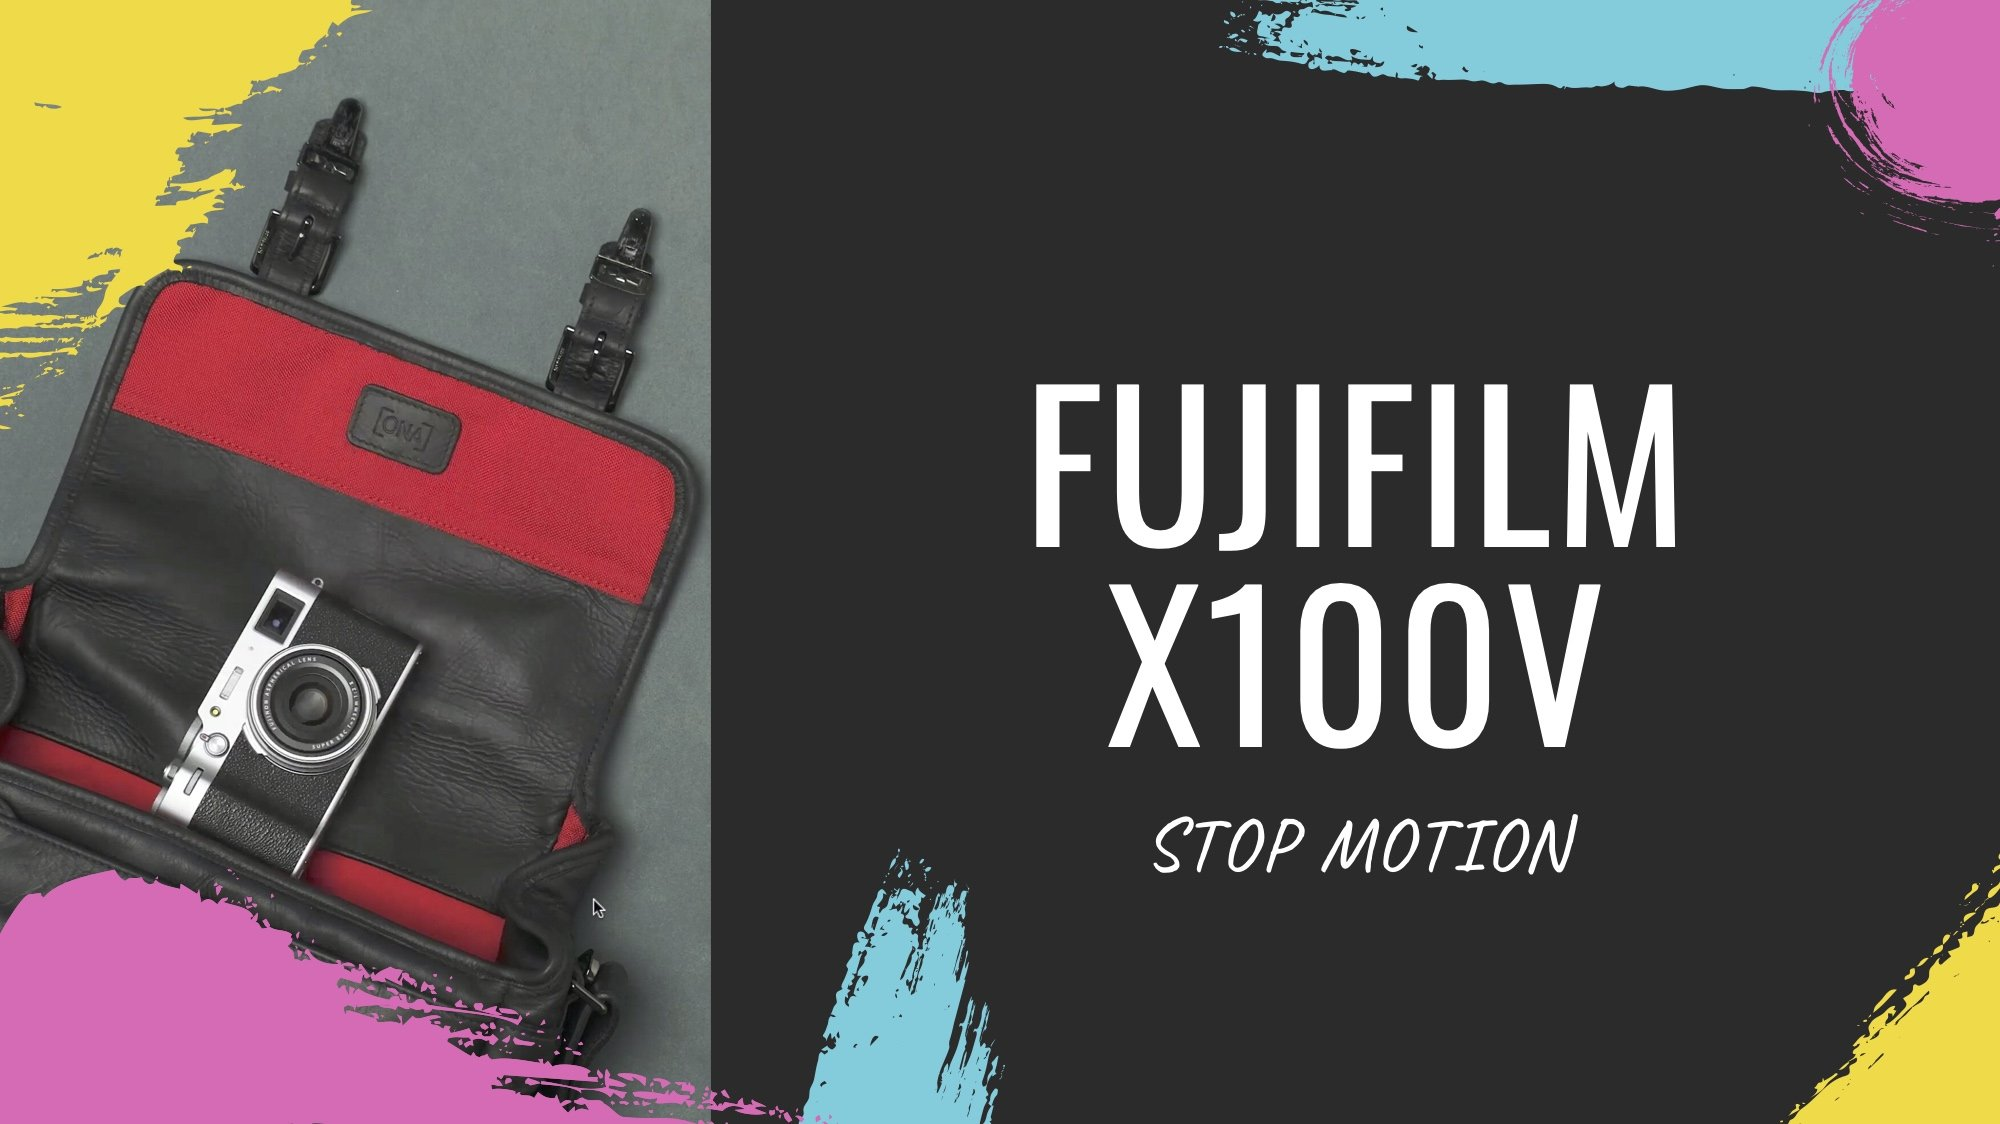 Welcome to the new FUJIFILM X100V – stop motion